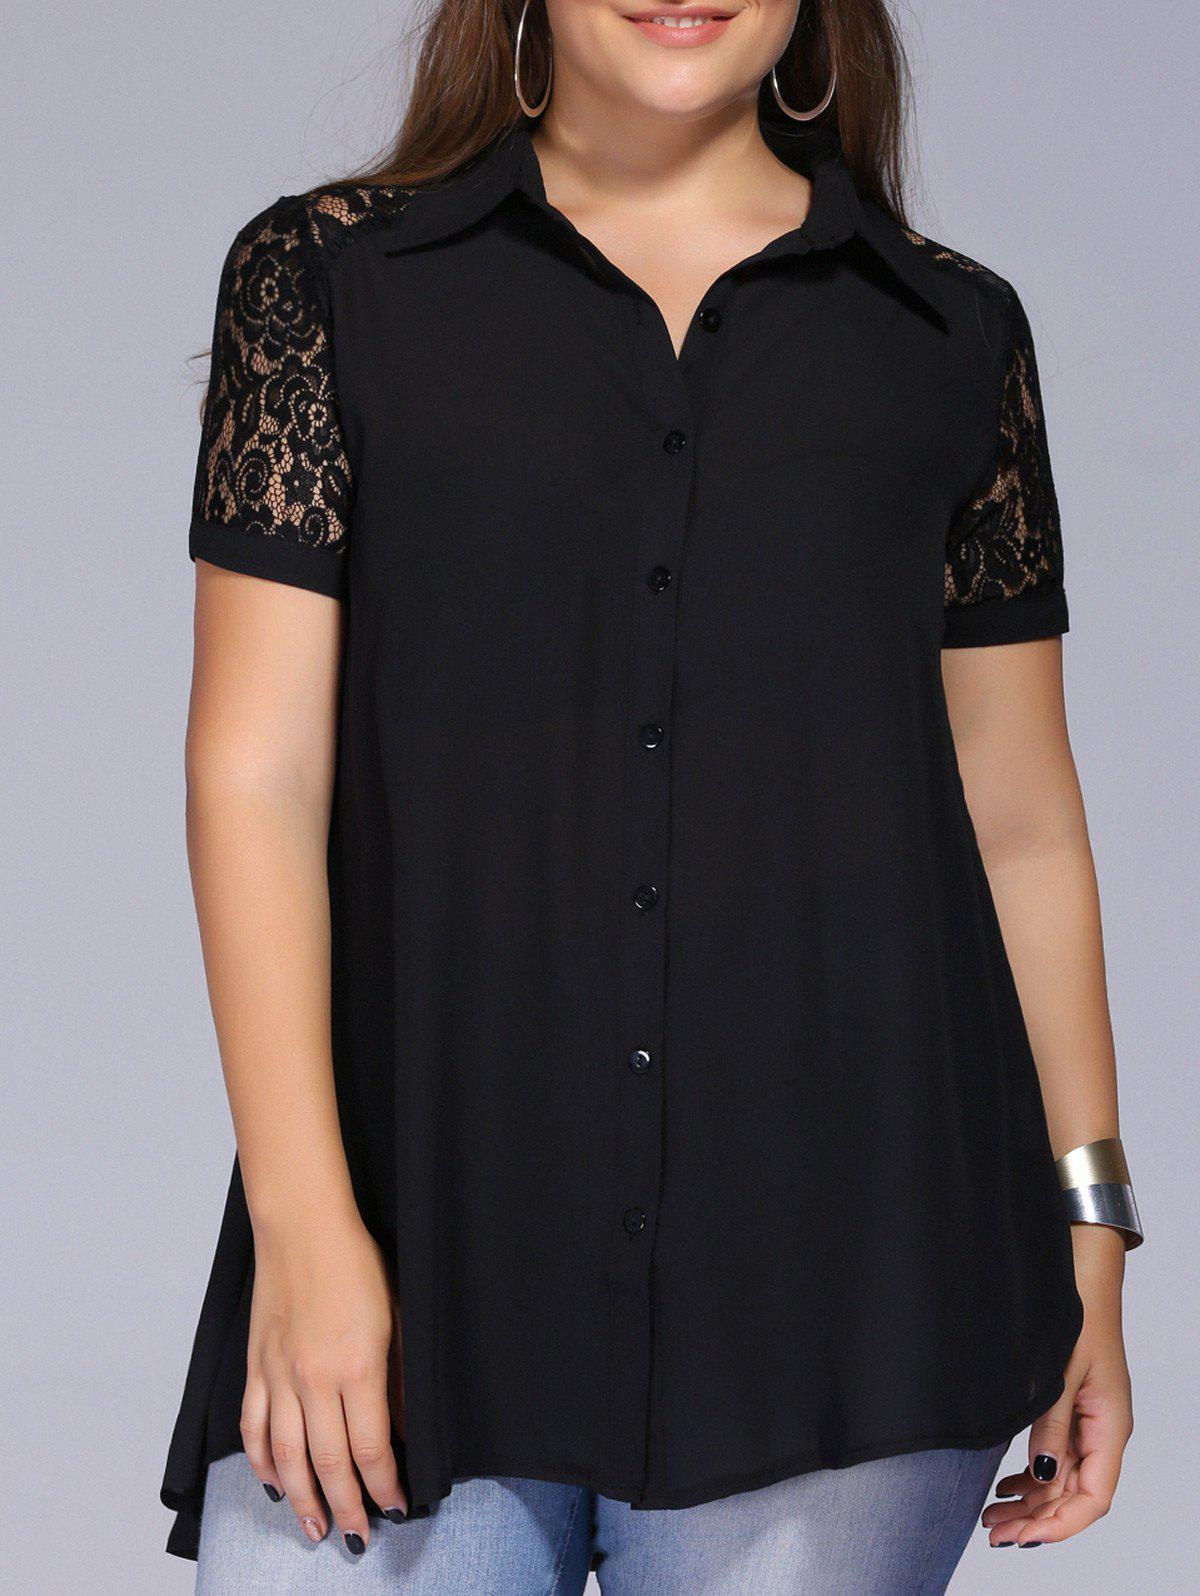 Lace Trim Plus Size Tunic Blouse - BLACK XL